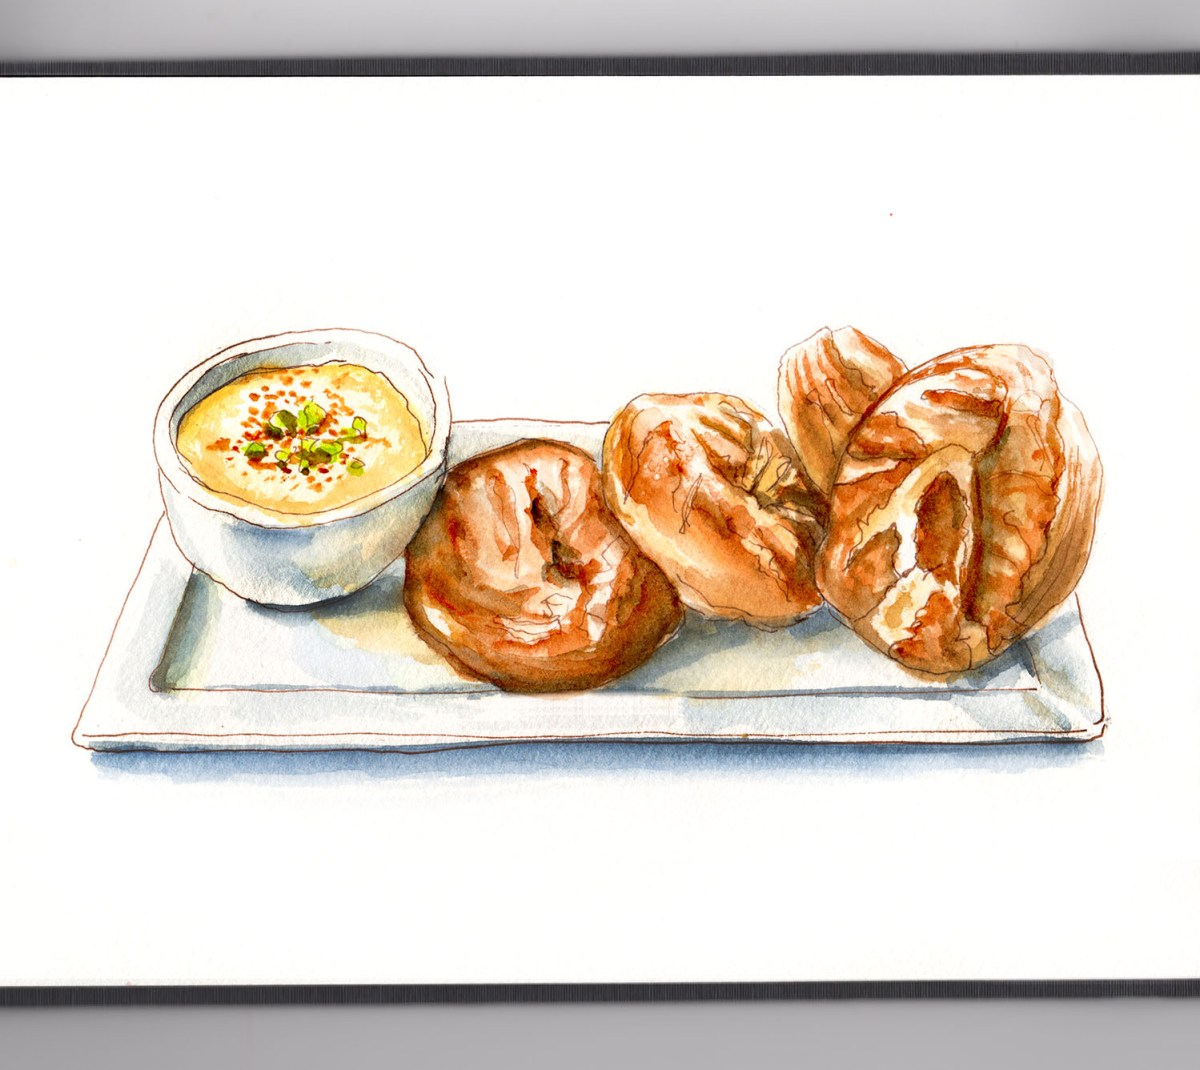 #WorldWatercolorGroup - Day 12 - Freshly Made Bread_Pretzel Bread With Cheese - Doodlewash